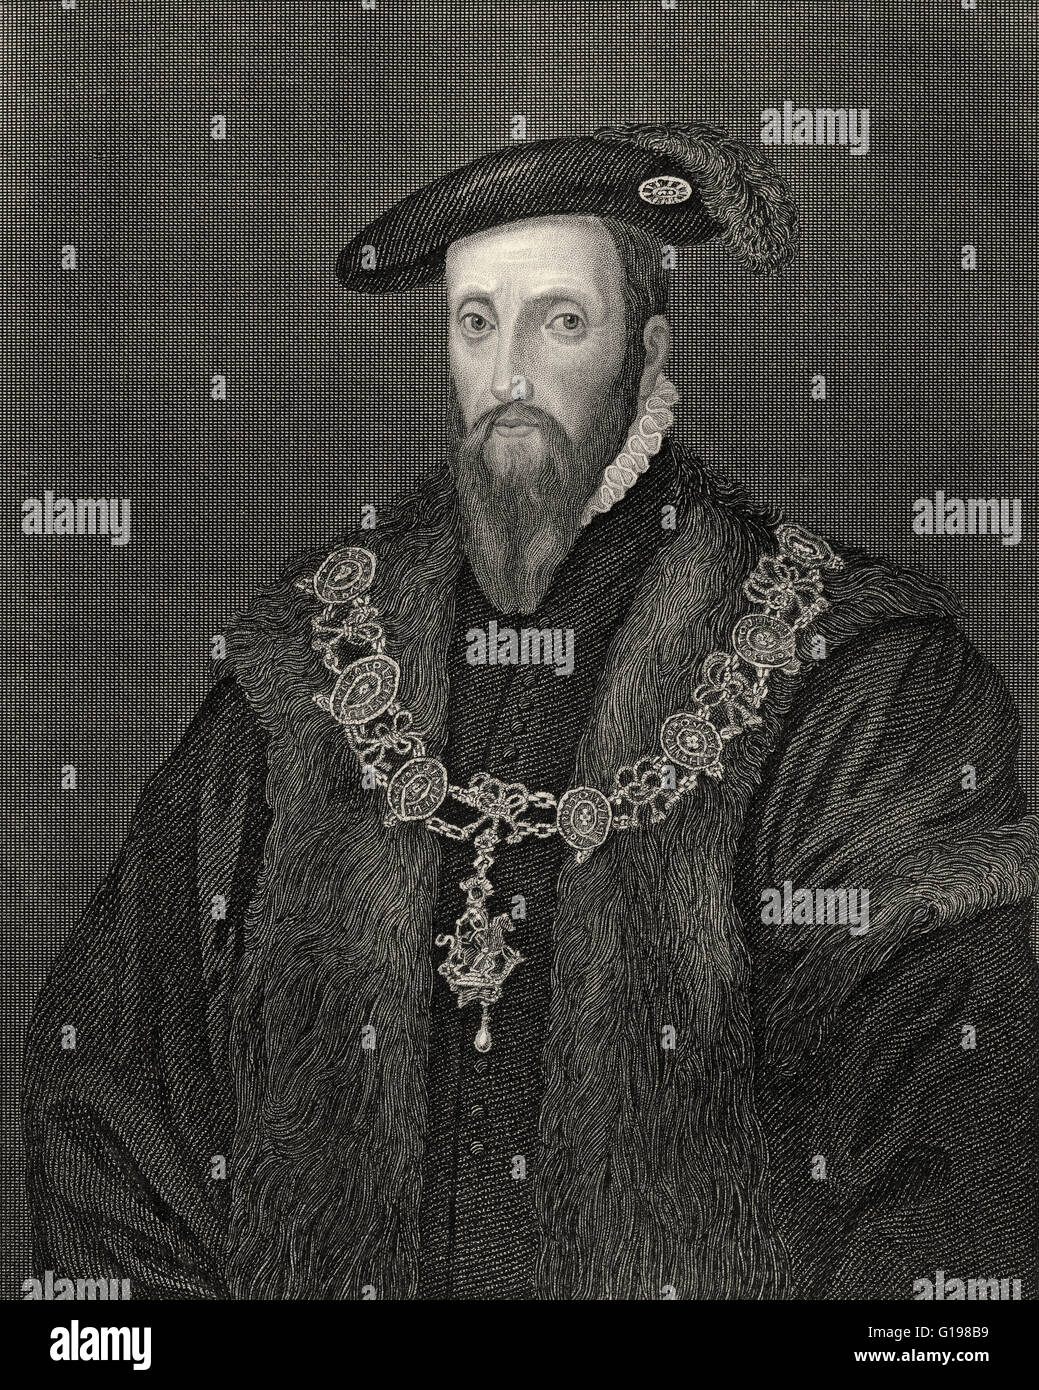 Edward Seymour, 1st Duke of Somerset, KG, c. 1500-1552, brother of Queen Jane Seymour, Lord Protector of England - Stock Image